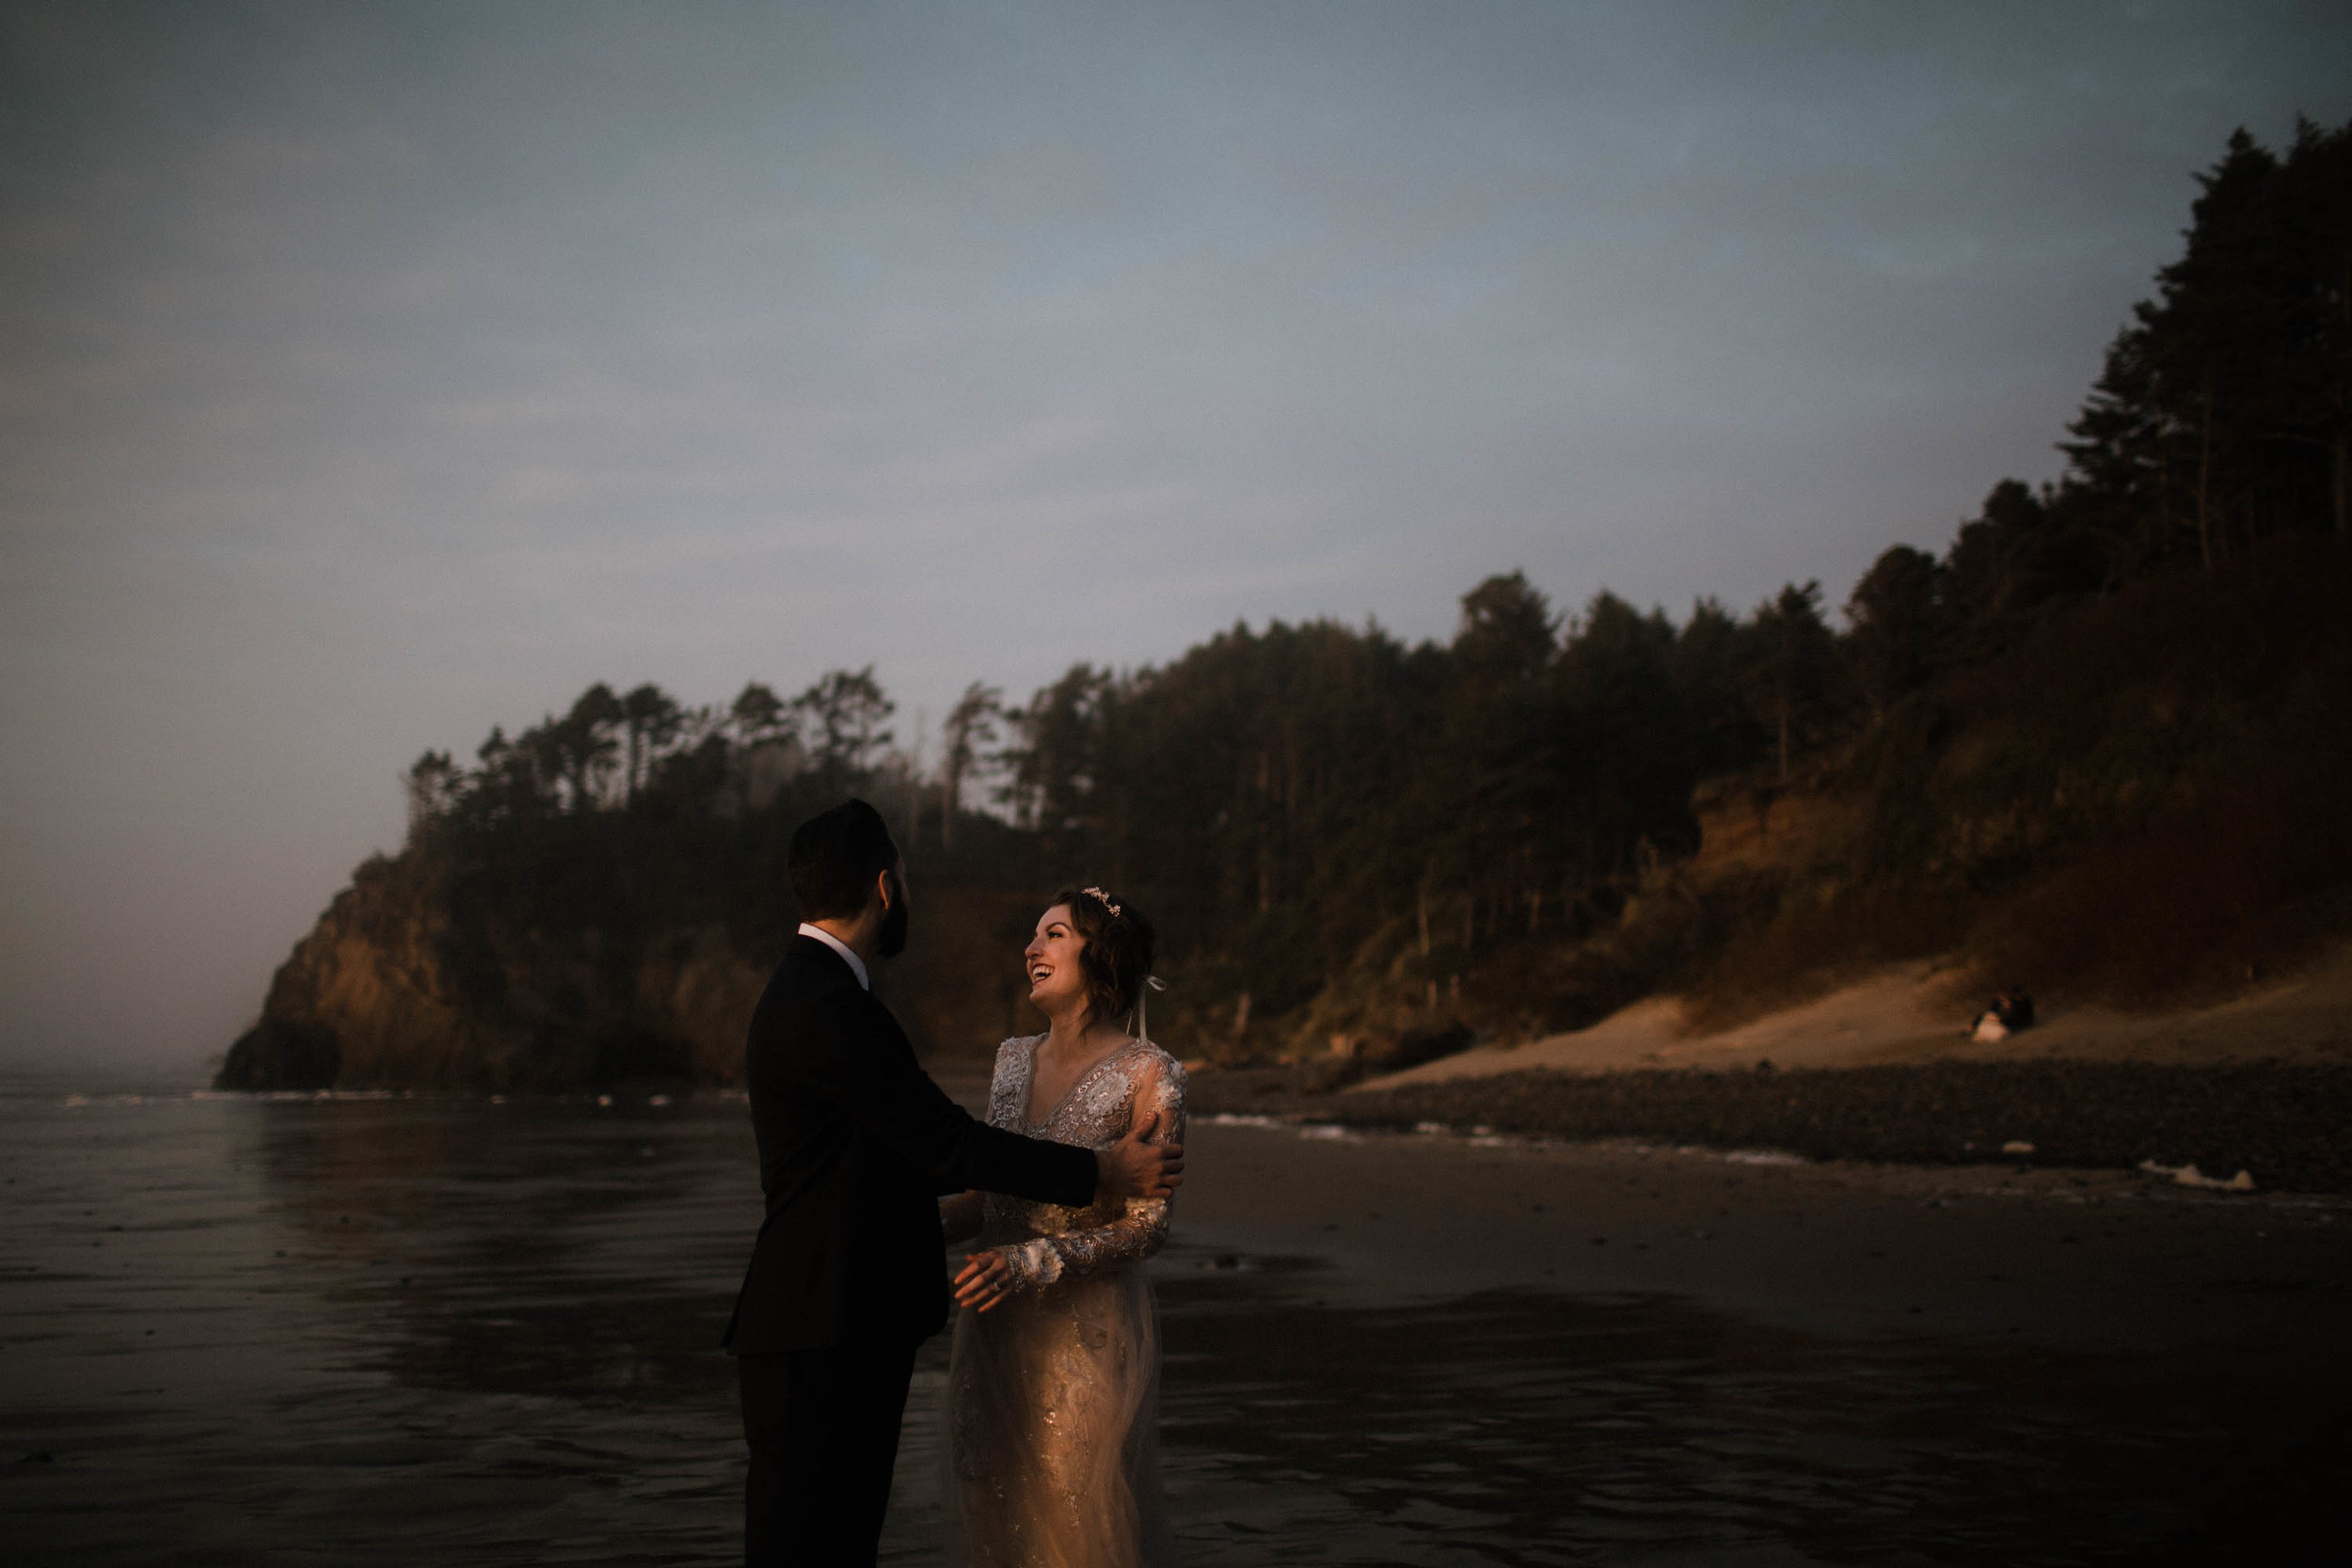 canonbeach_elopment_weddingphotographer-97.jpg